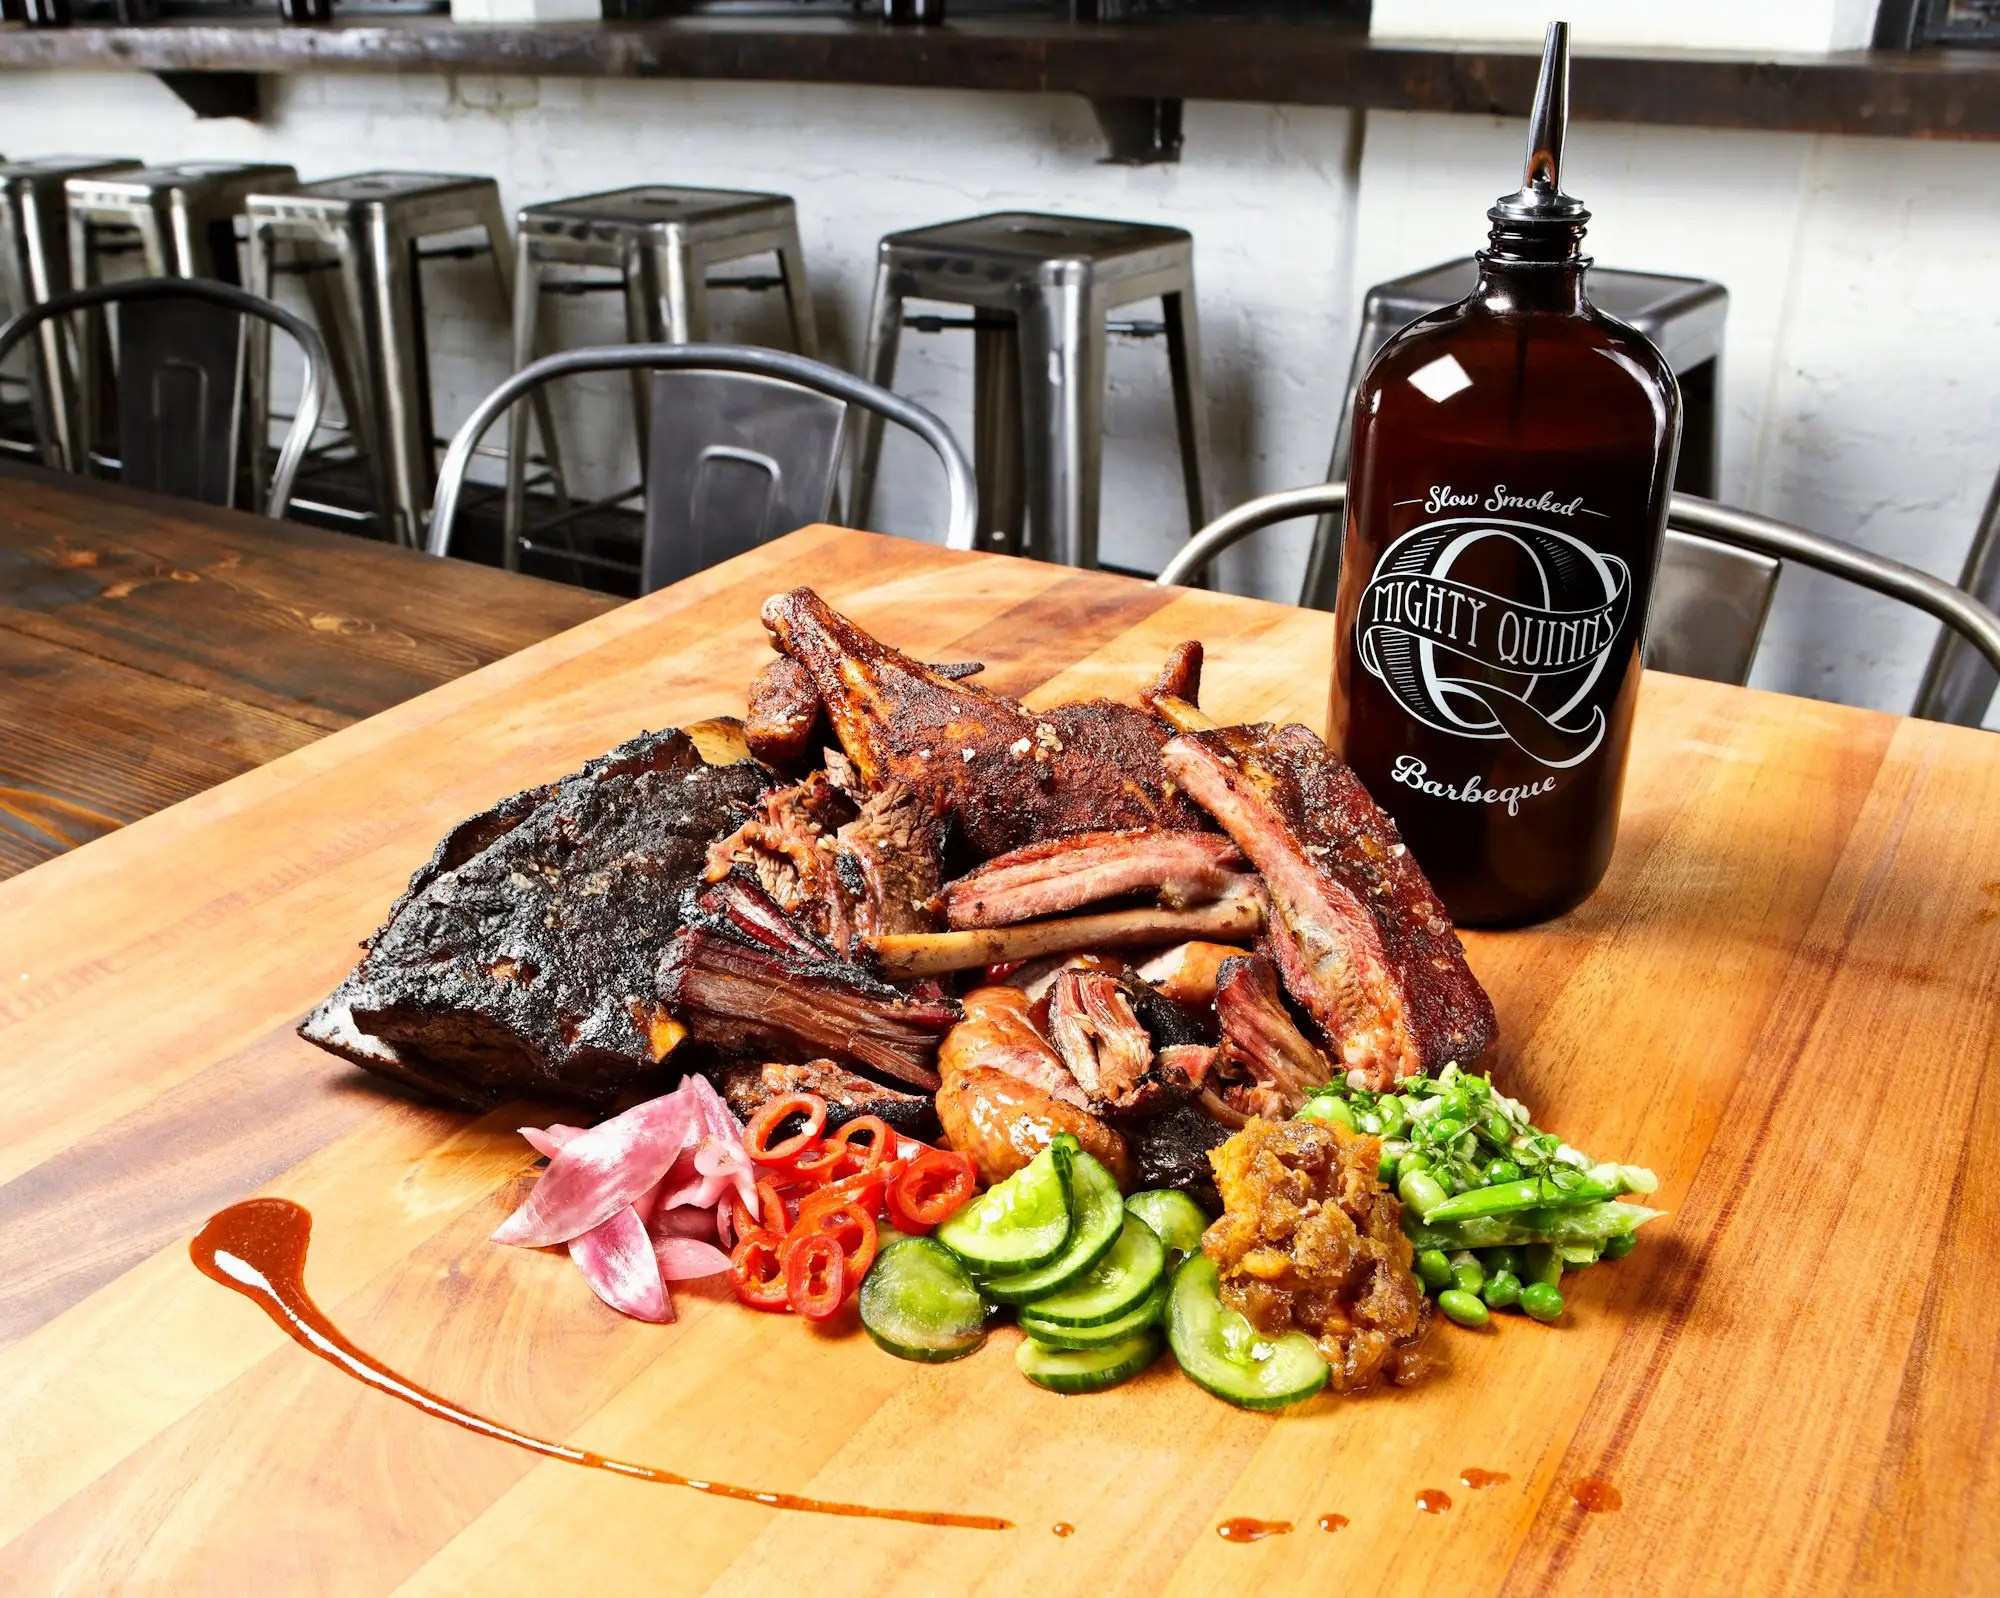 Mighty Quinn's Barbecue, NYC